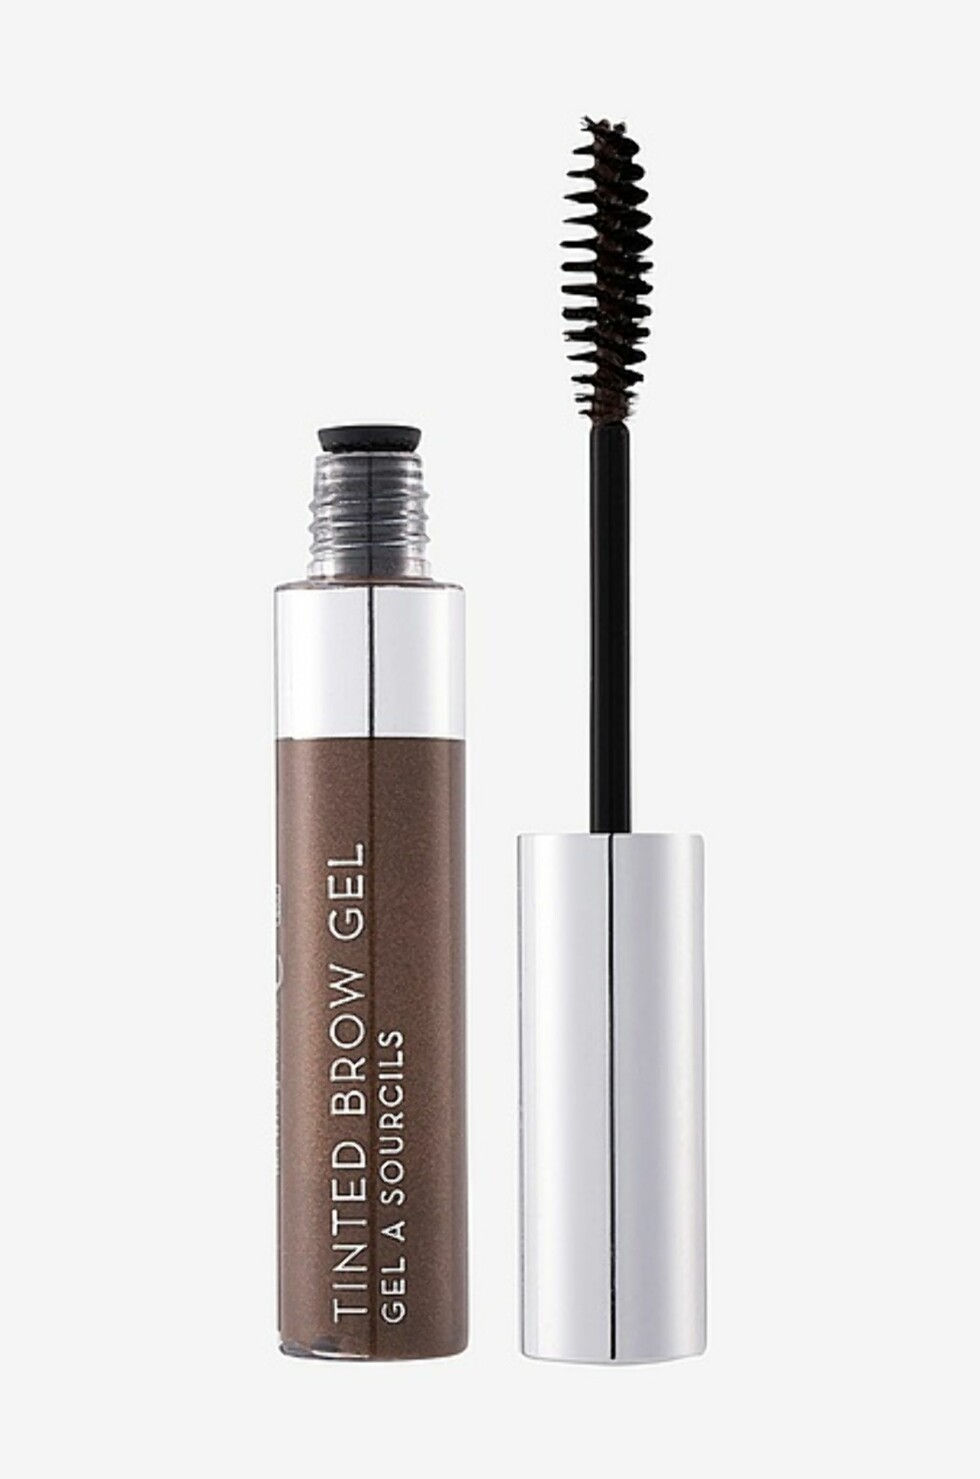 Brow gel fra Anastasia |235,-| https://www.ellos.no/anastasia/tinted-brow-gel/1050434-01